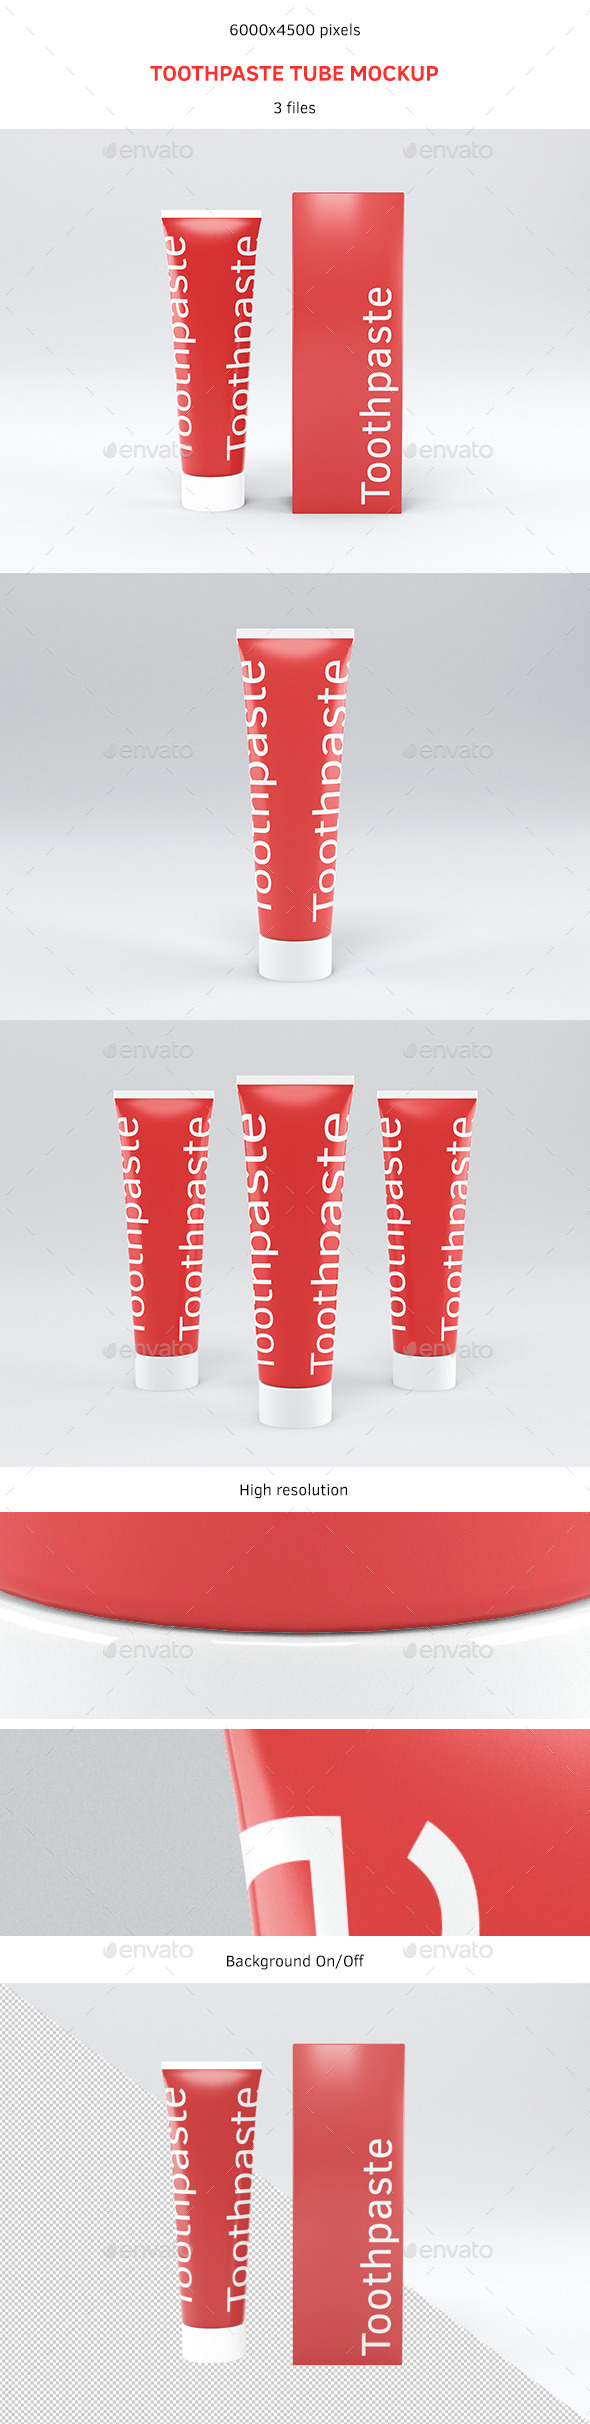 GraphicRiver Toothpaste Tube Mockup 9068094